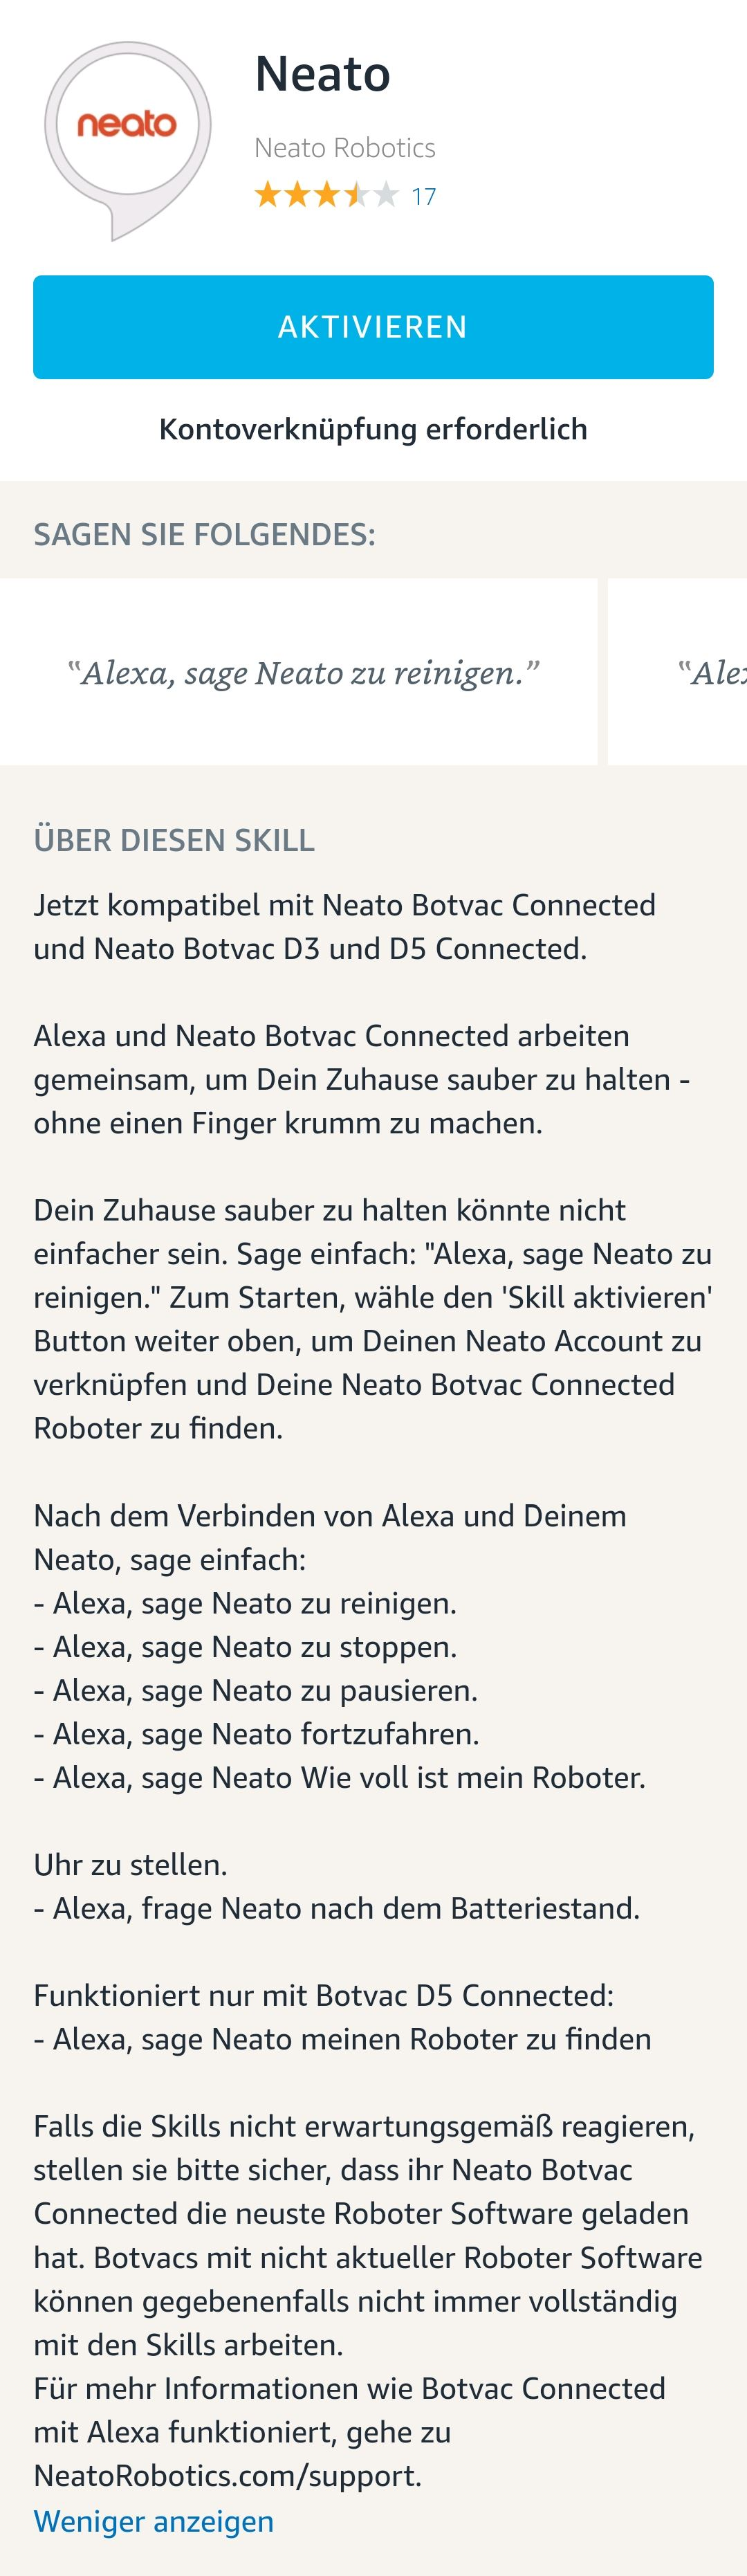 neato-botvac-connected-alexa-skill Neato Botvac D5 connected - ein Staubsaugerroboter im Test Apple iOS Featured Gadgets Google Android Hardware Reviews Smart Home Software Technology Testberichte YouTube Videos